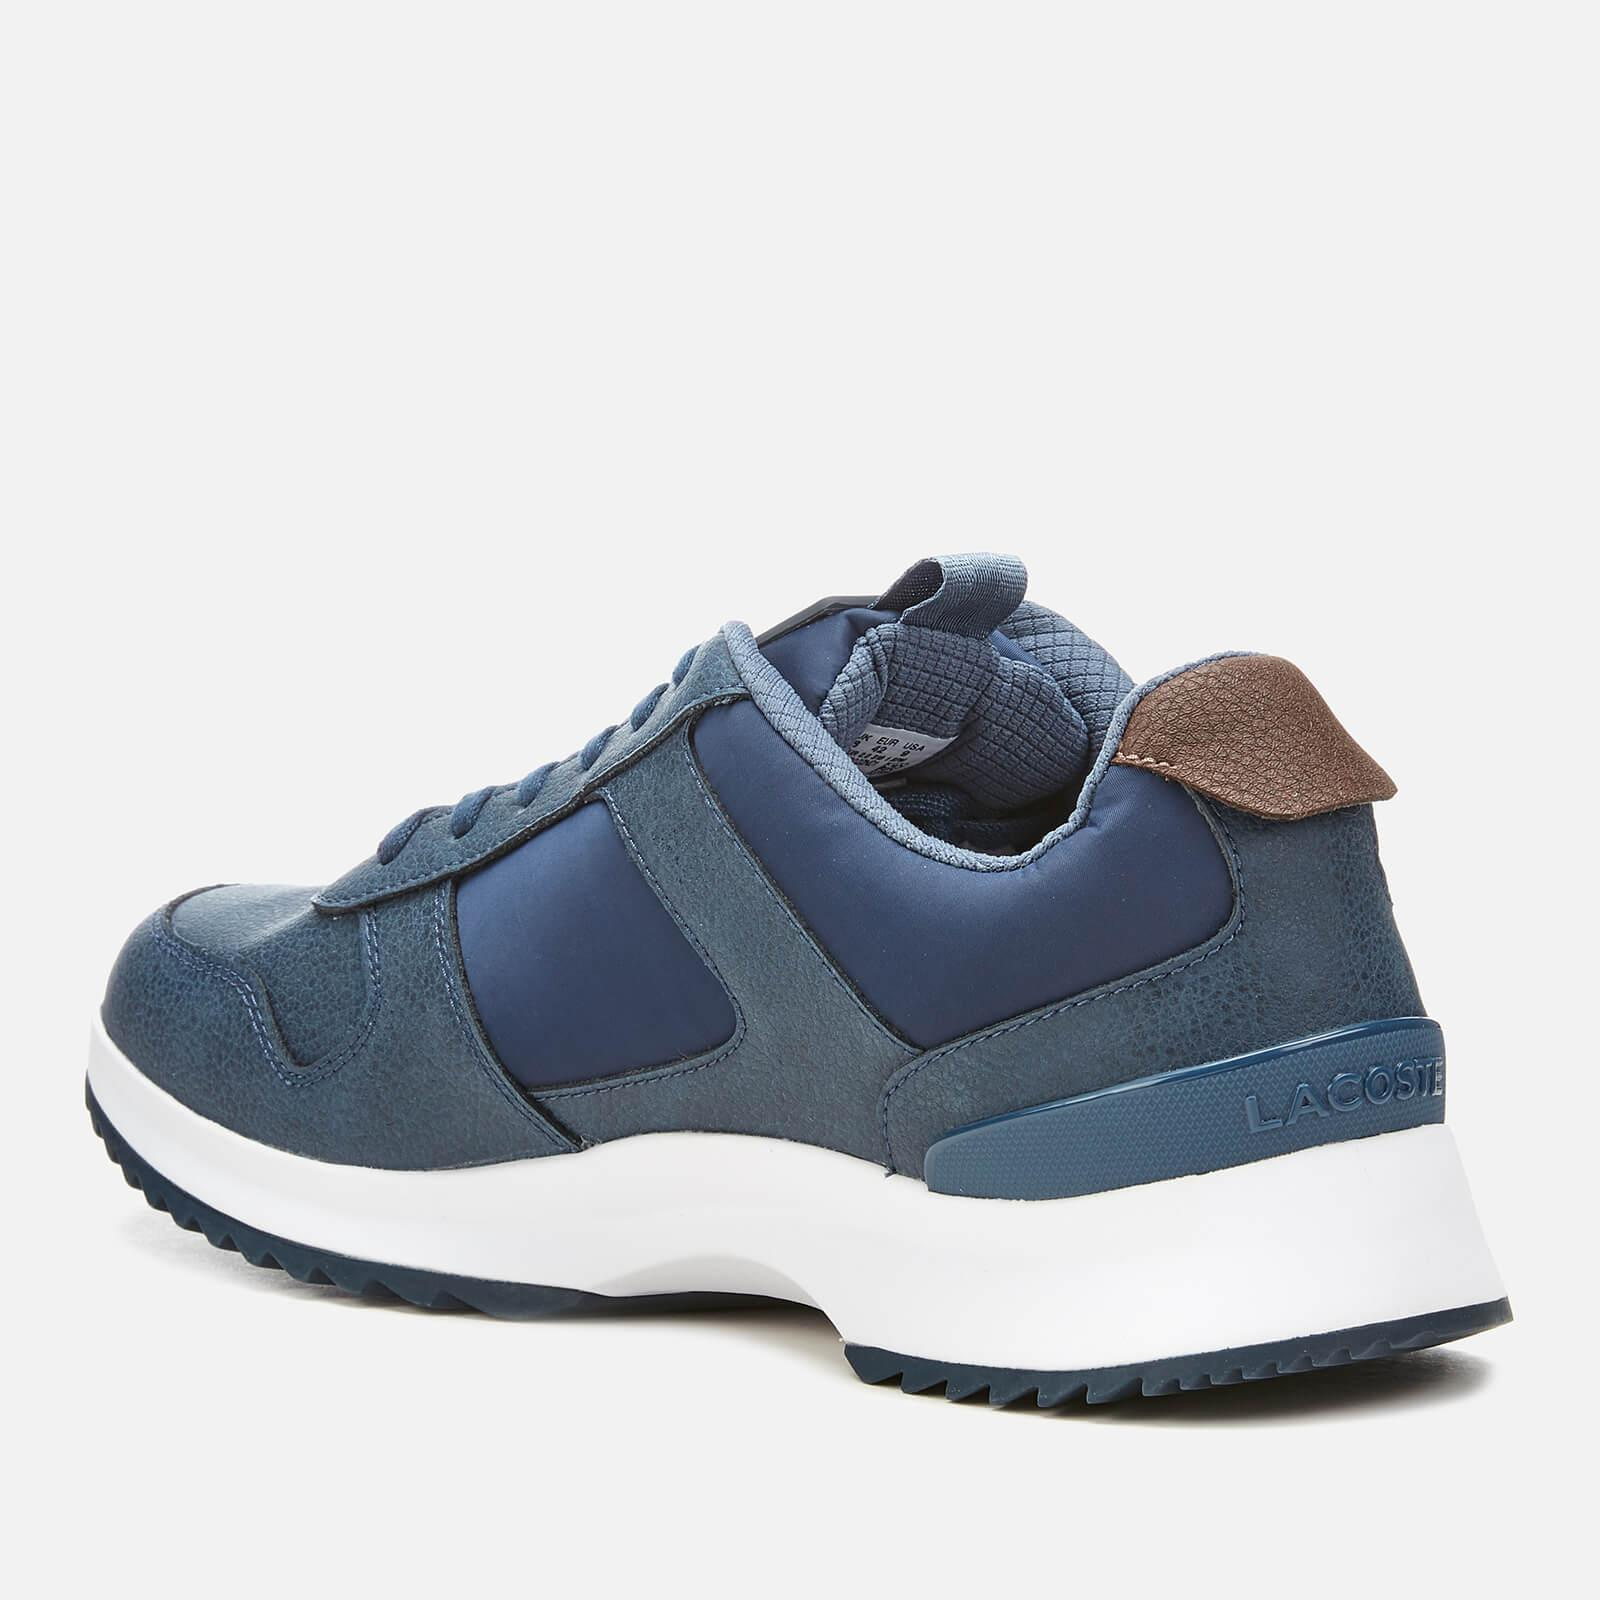 c0a359b5e68 Lacoste - Blue Joggeur 2.0 318 1 Textile leather Runner Style Trainers for  Men -. View fullscreen